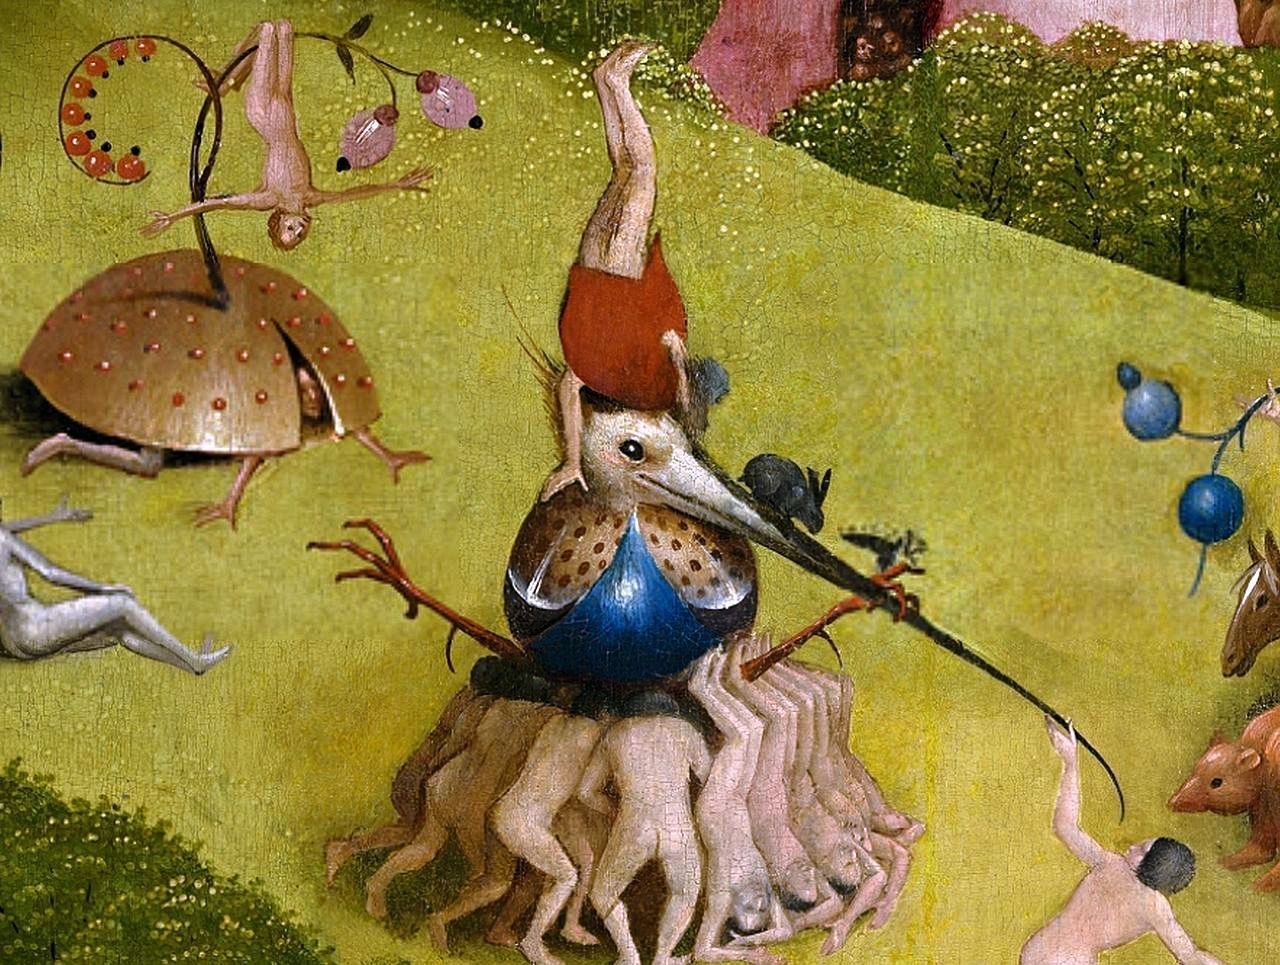 1280px-bosch_hieronymus_-_the_garden_of_earthly_delights_cent